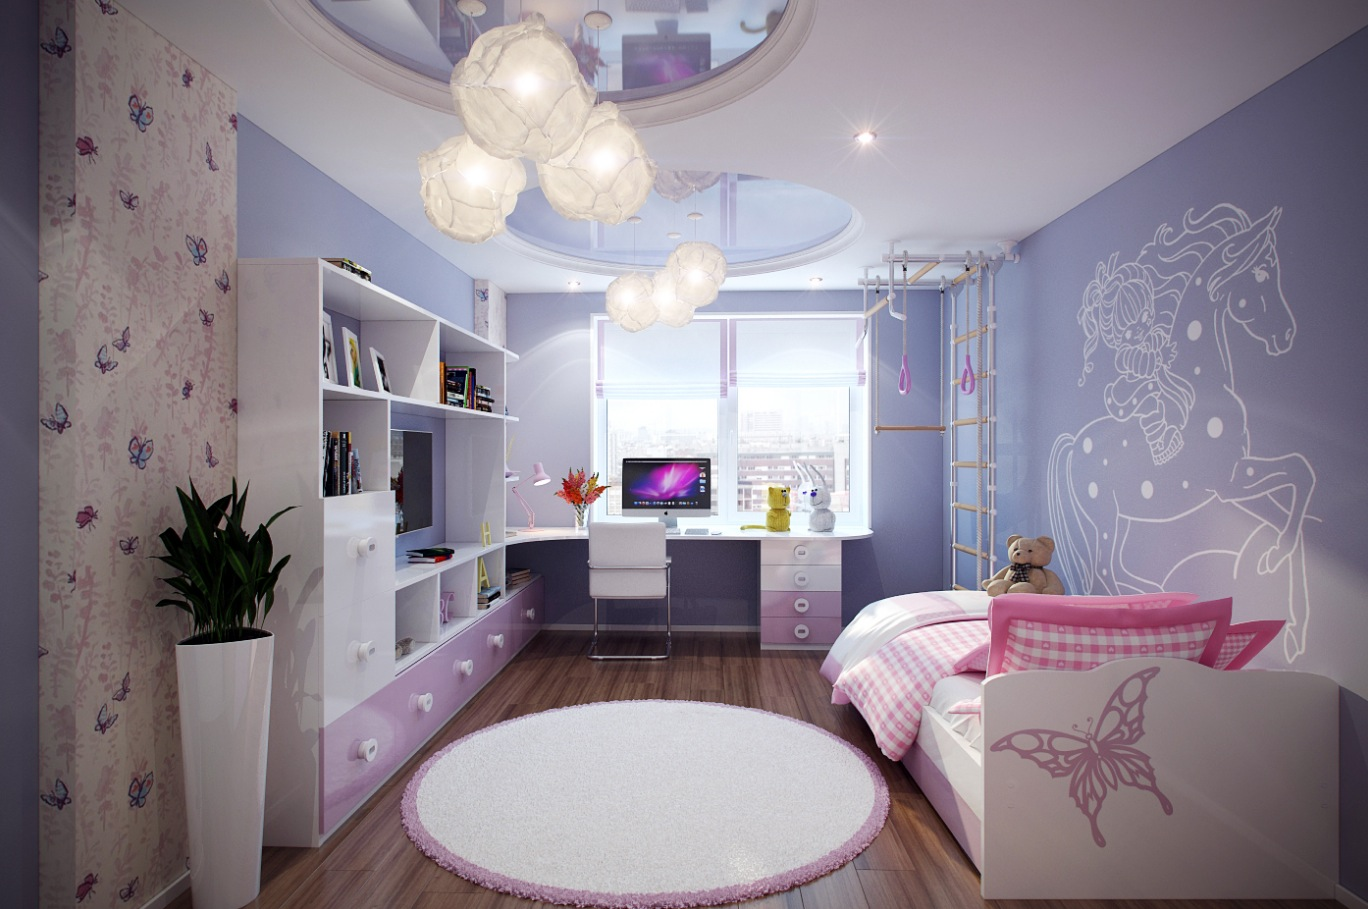 Casting color over kids rooms for Cool kids rooms decorating ideas